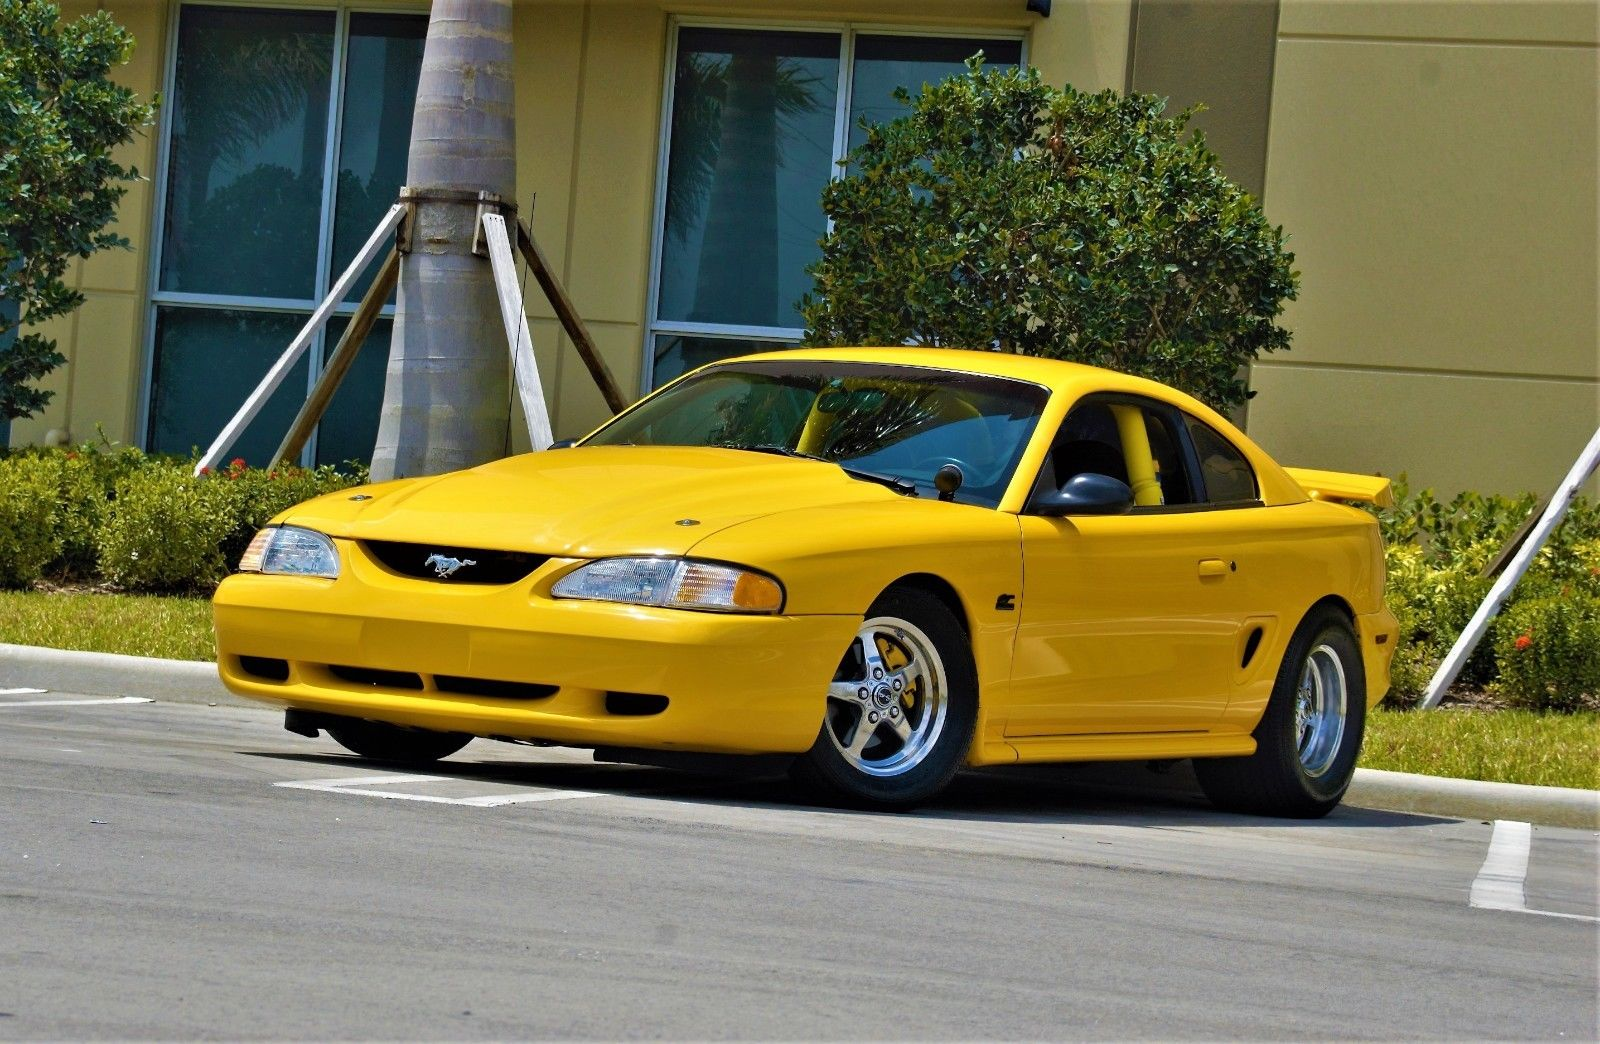 Great 1995 ford mustang gt 1995 mustang gt 700 hp street strip 2019